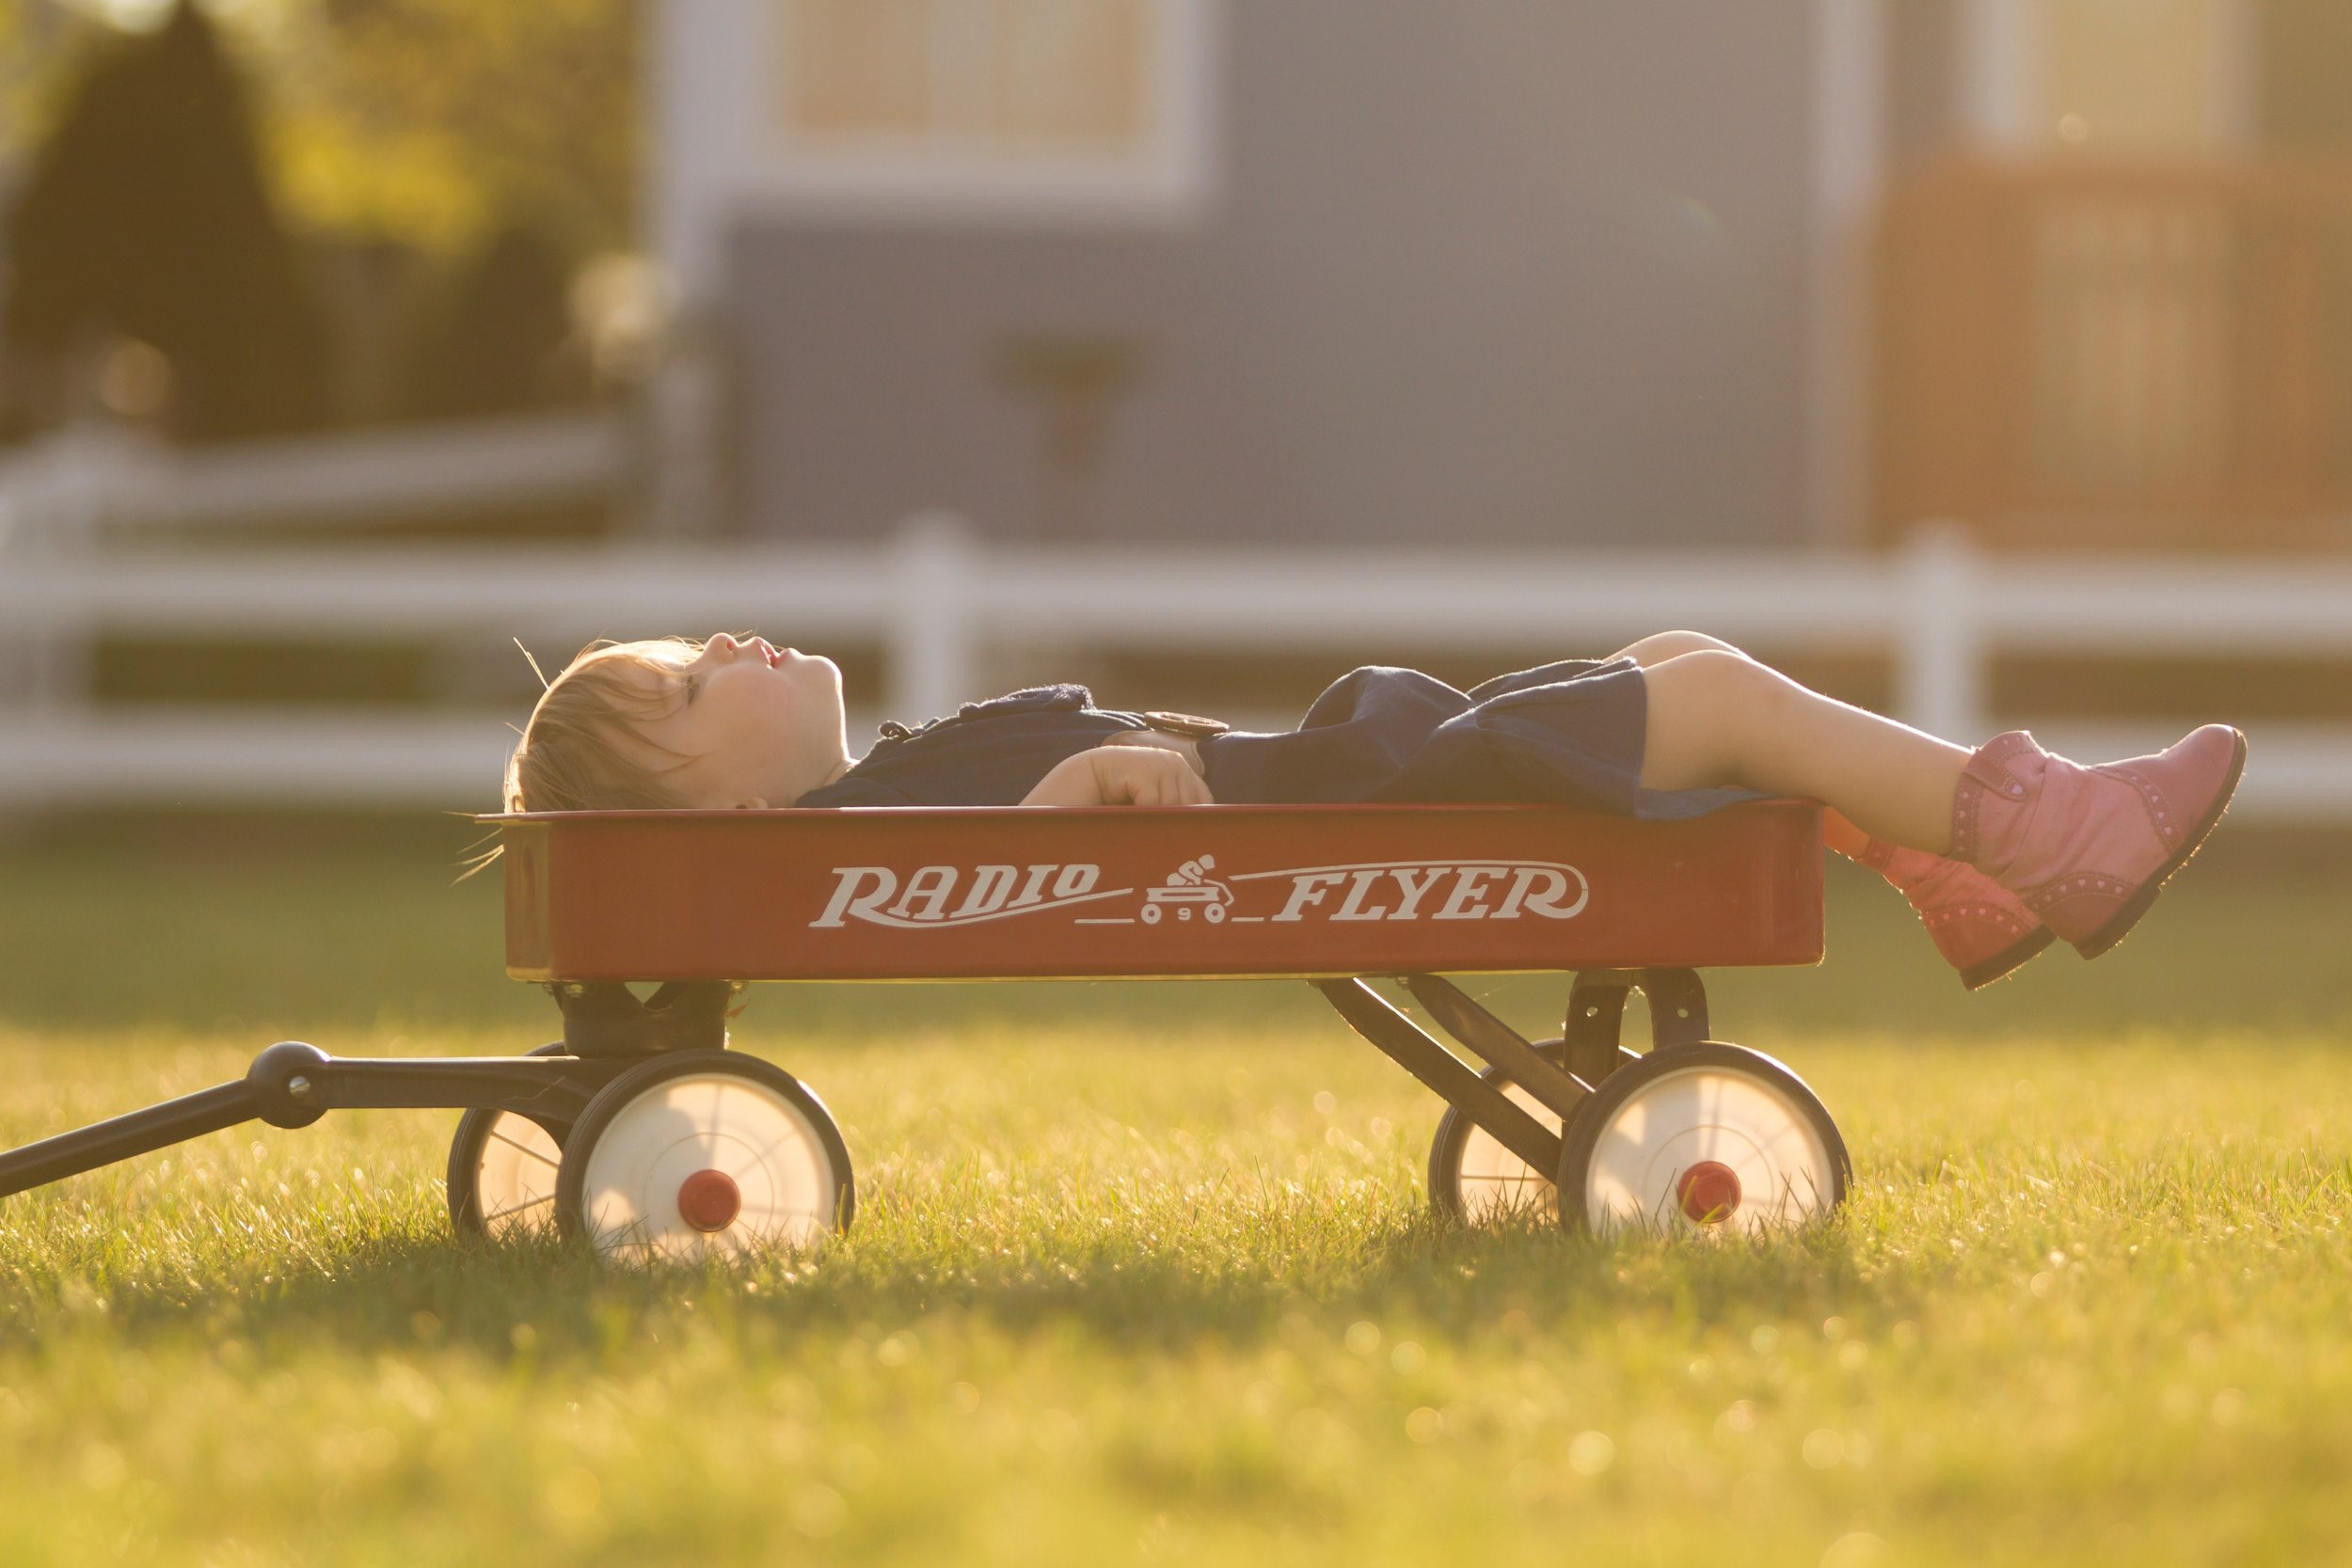 Little boy napping in a Radio Flyer wagon.